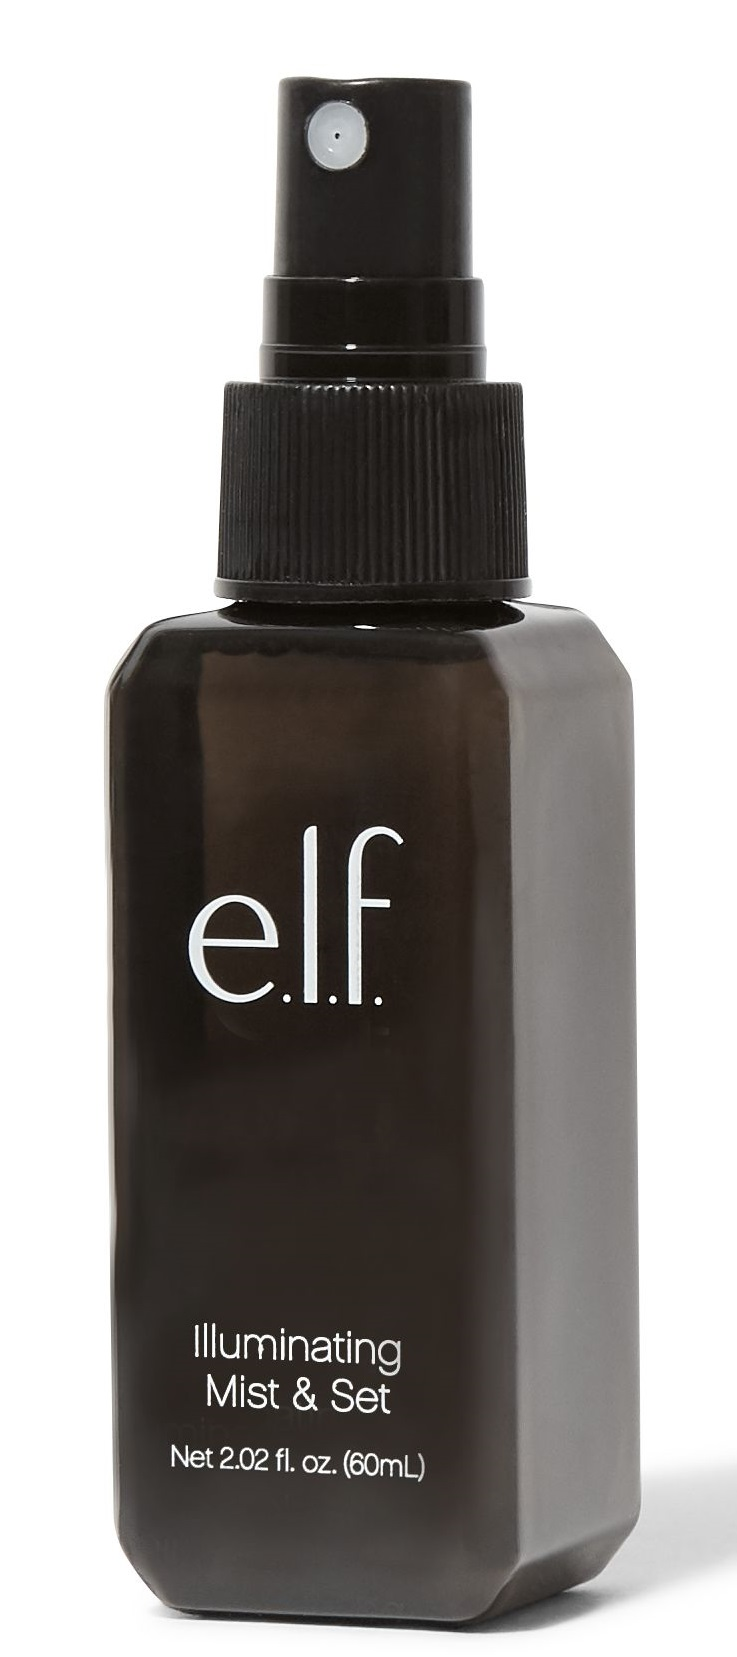 e.l.f. Illuminating Mist & Set